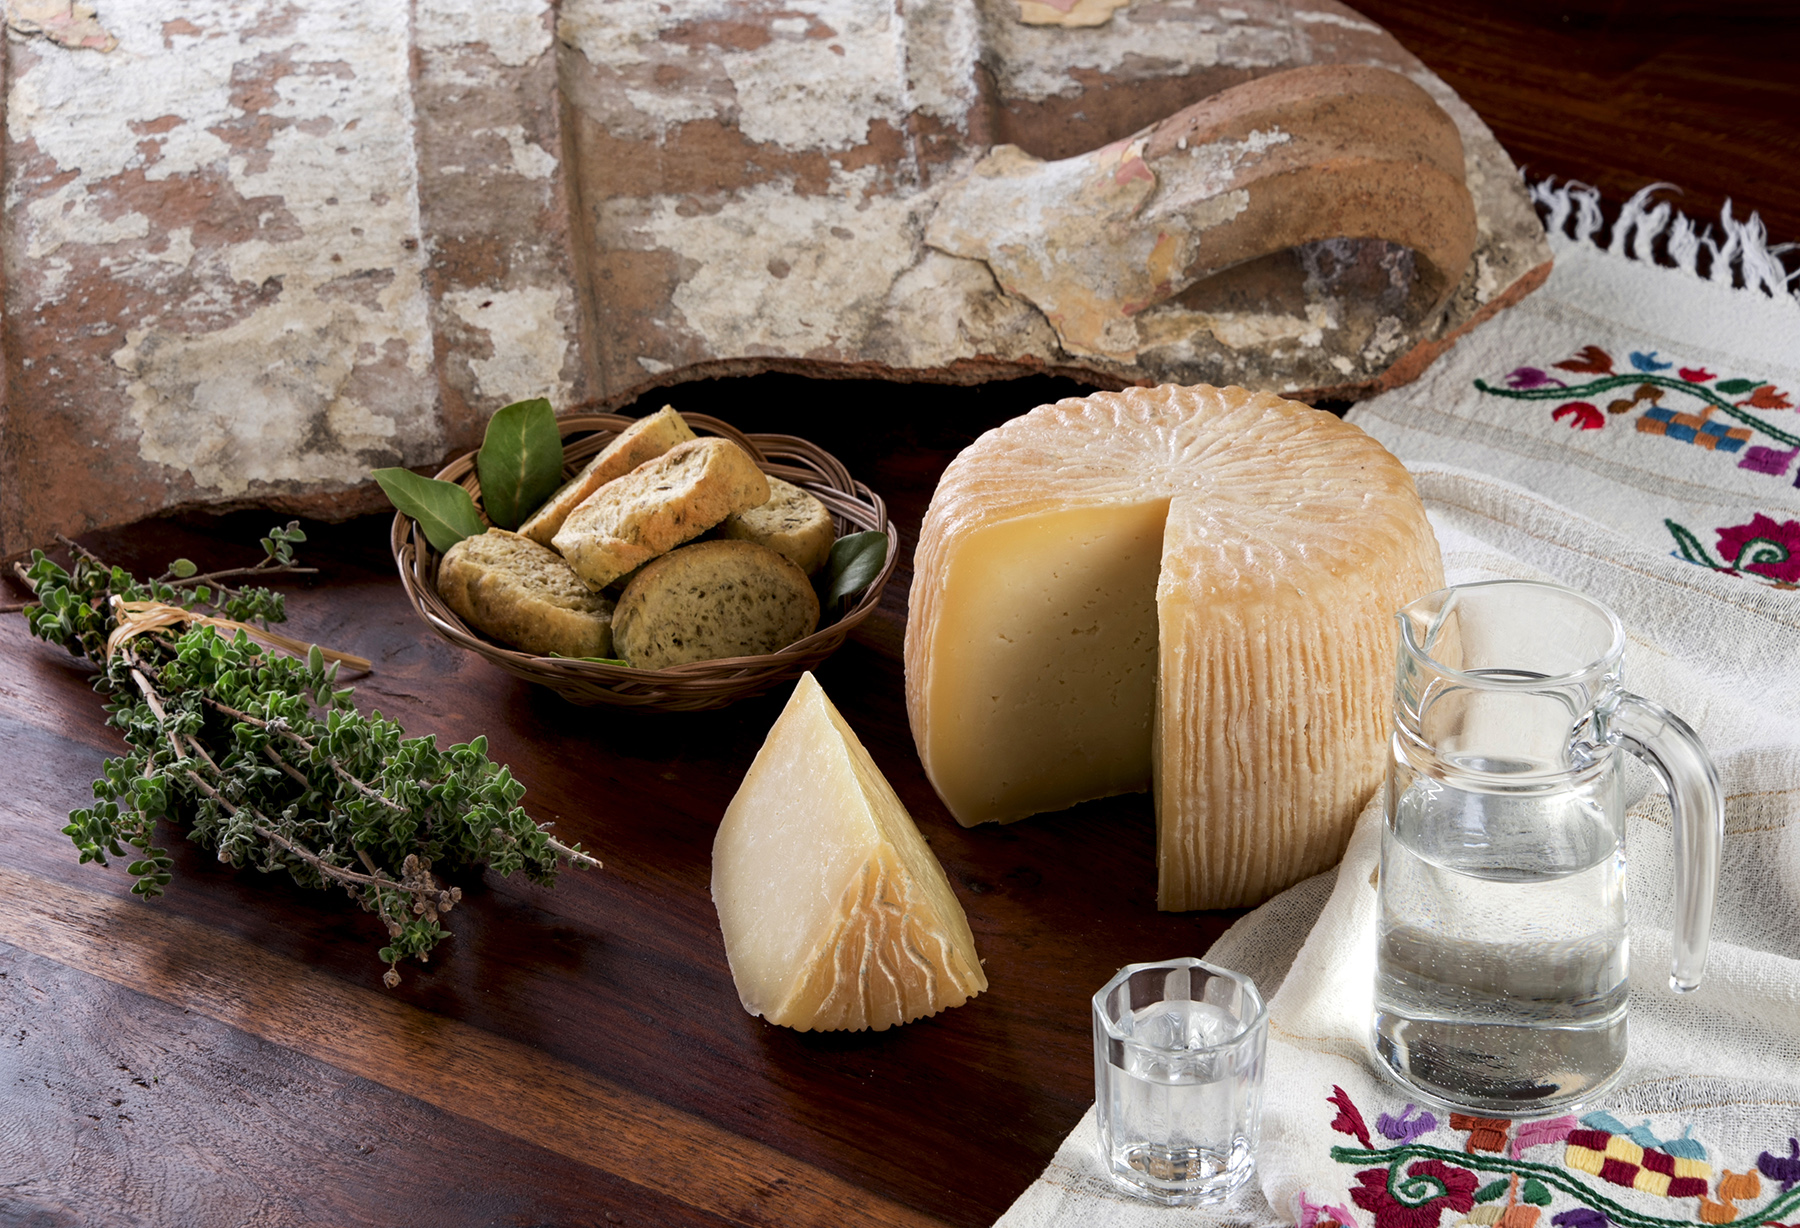 Cretan Cheeses and Other Dairy Products